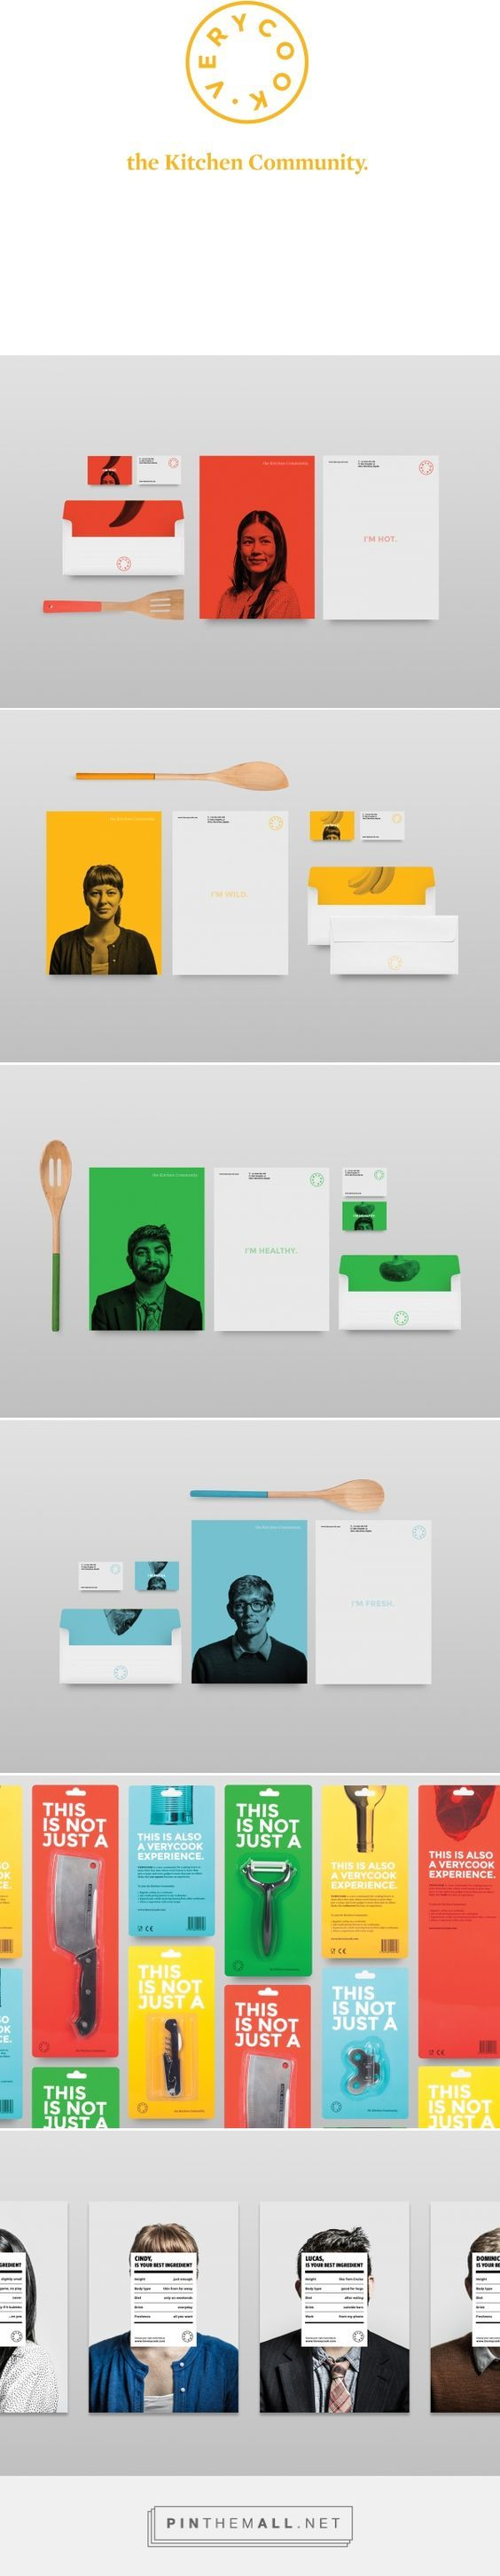 12064 best Graphic Design images on Pinterest   Corporate identity ...